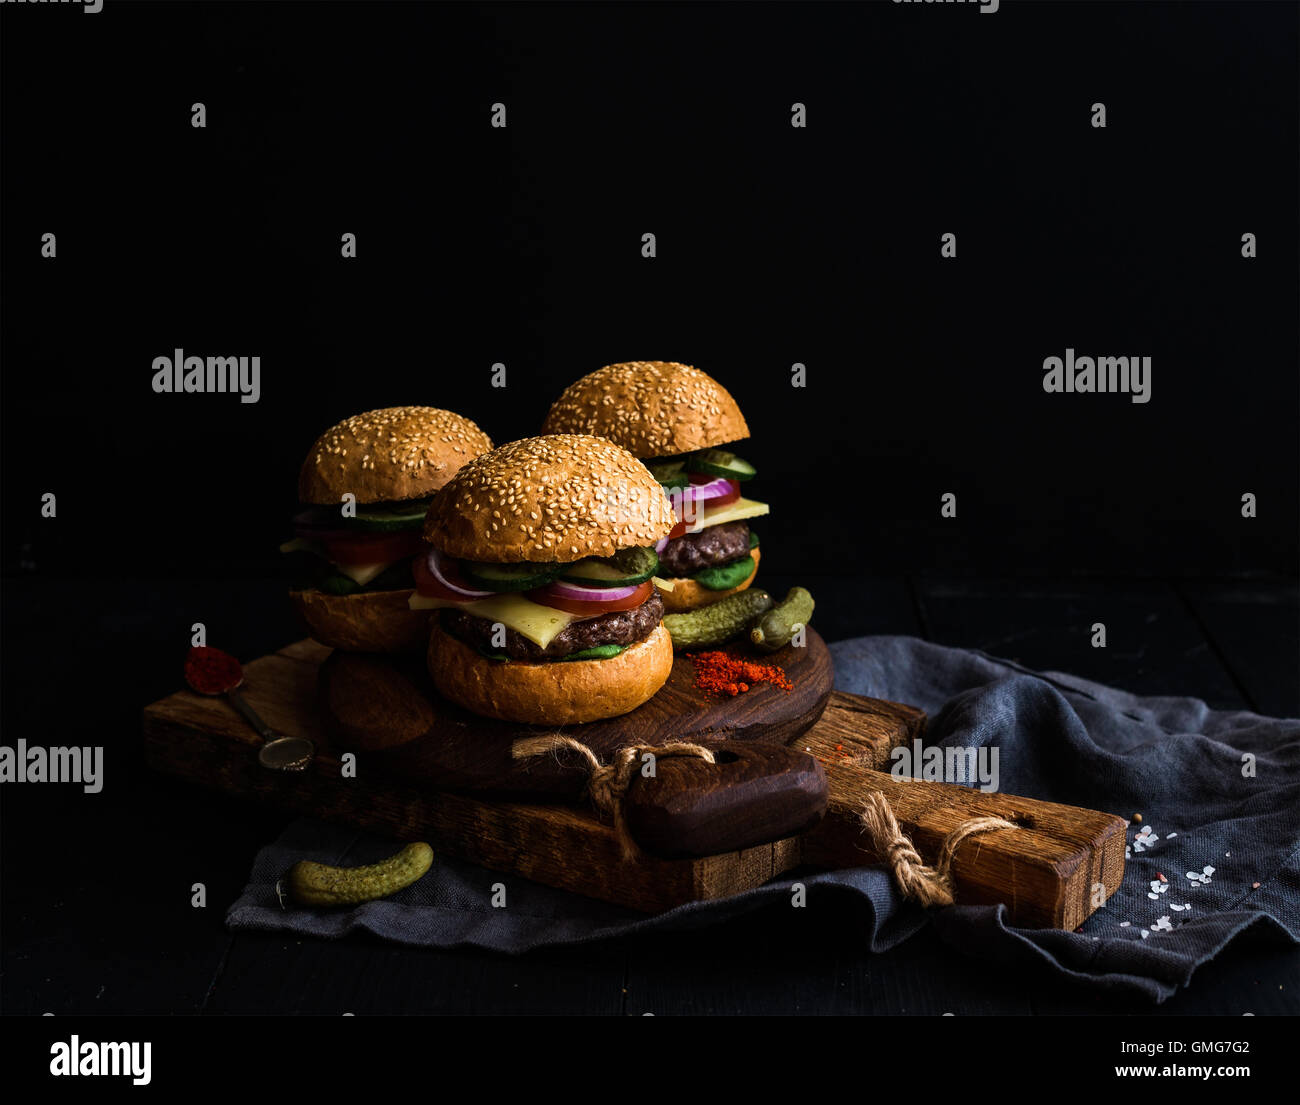 Fresh beef burgers with pickles and spices on rustic wooden boards, black background. - Stock Image